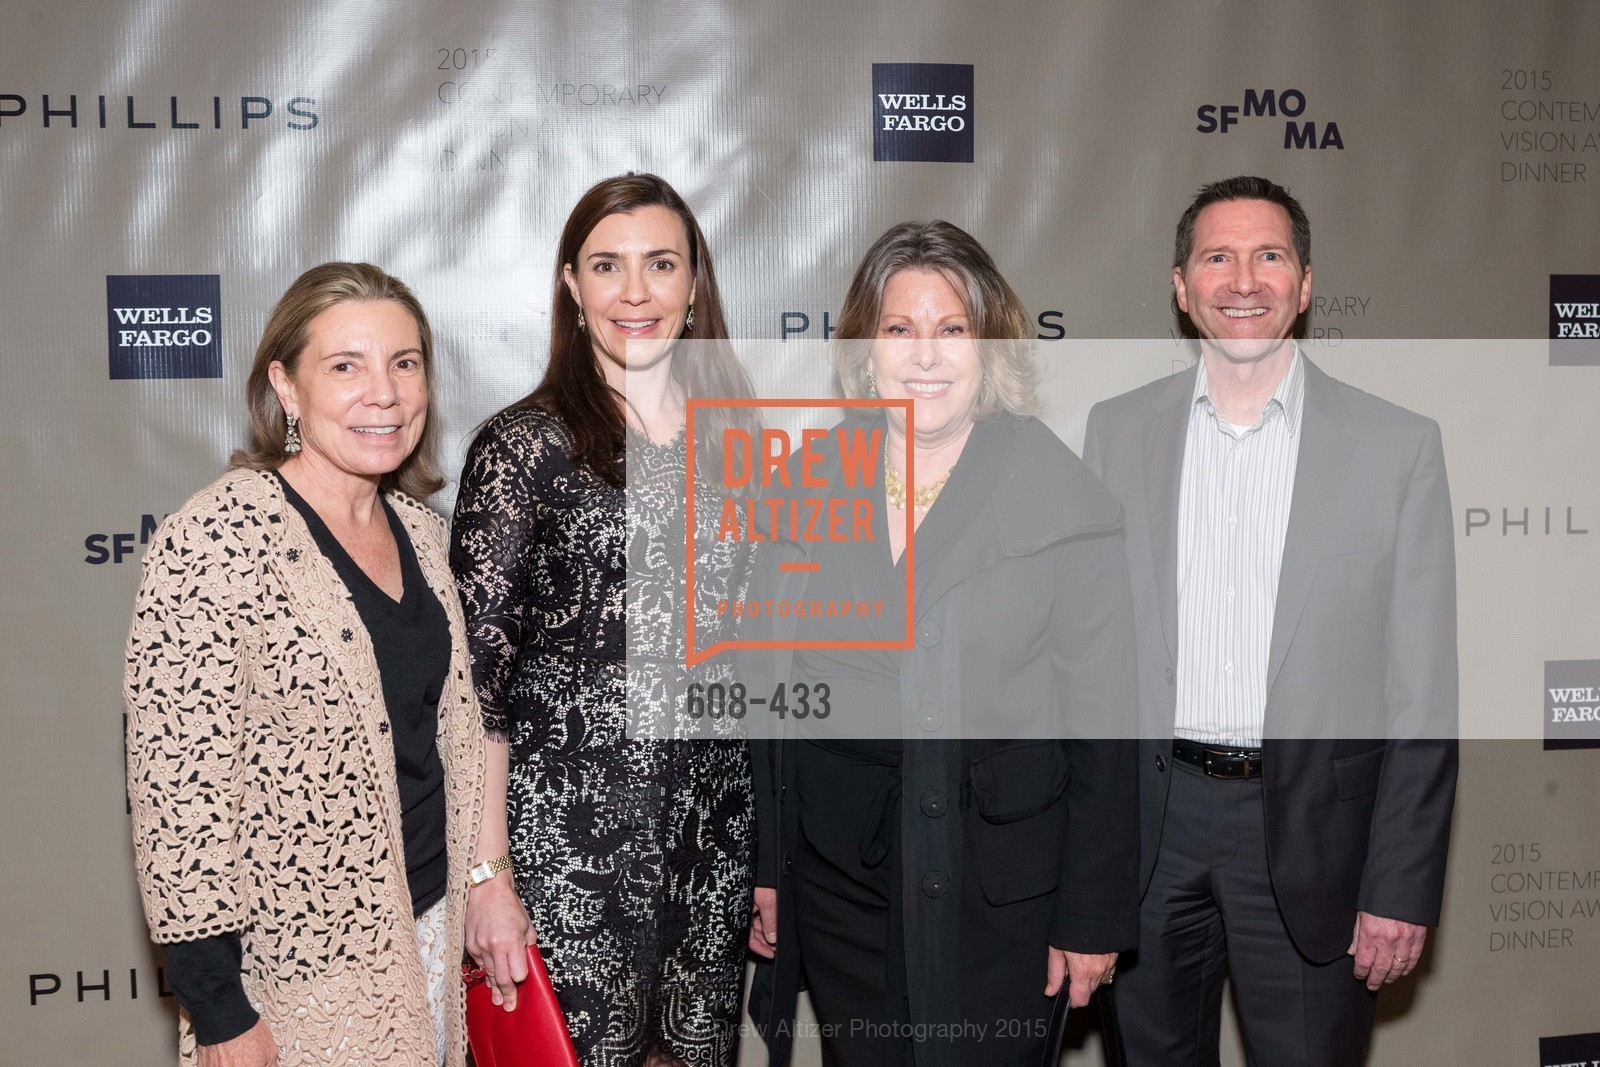 Gretchen Frank, Alexandra Niederauer, Colleen Keller, Peter Keller, SFMOMA Contemporary Vision Award, Regency Ballroom. 1300 Van Ness, November 3rd, 2015,Drew Altizer, Drew Altizer Photography, full-service agency, private events, San Francisco photographer, photographer california